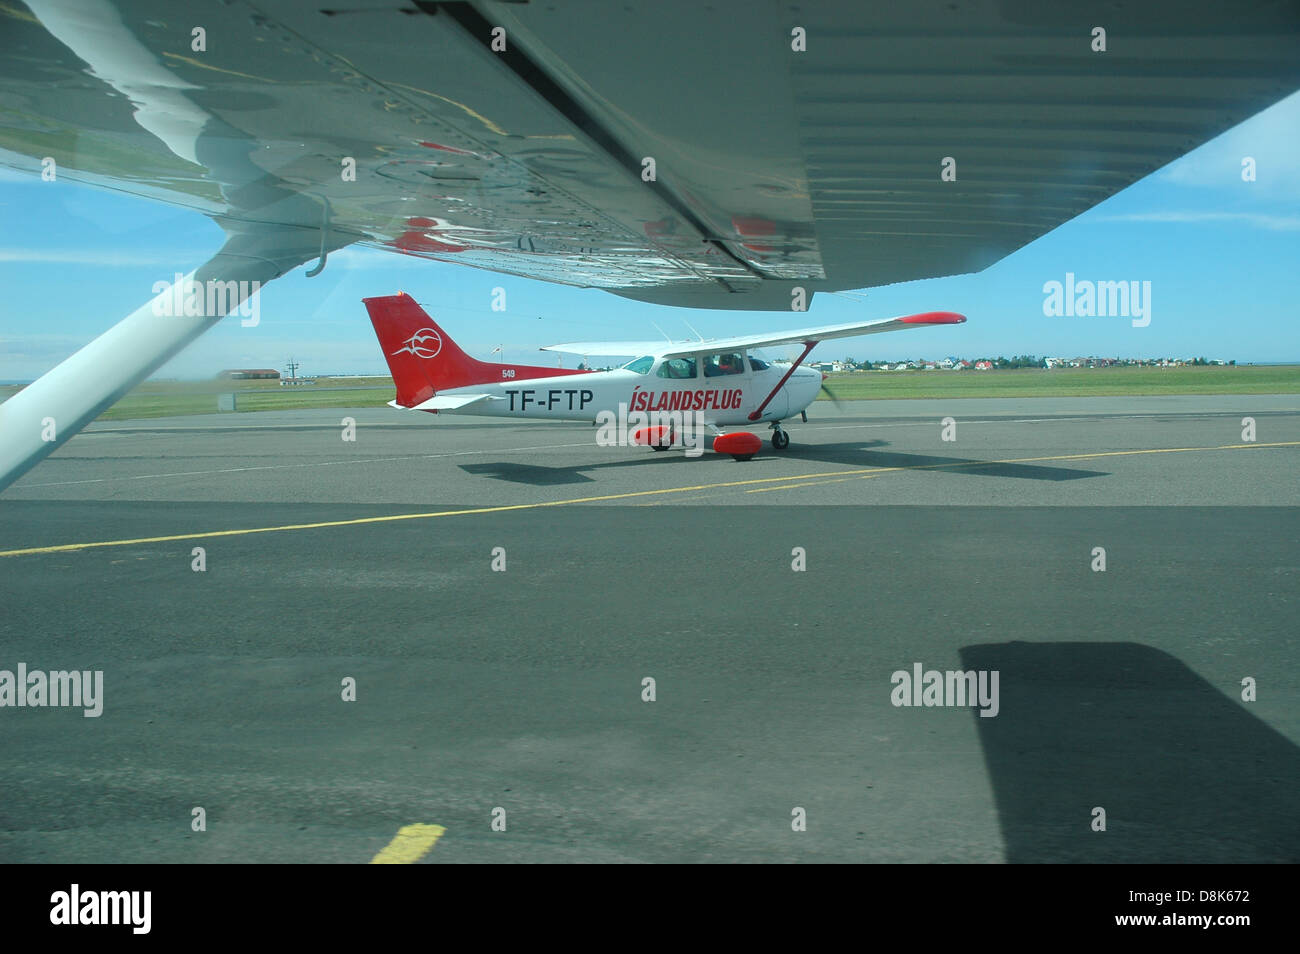 Taxiing in a light aircraft at Reykjavik airport on a sightseeing flight in Iceland. Another plane is taxiing ahead - Stock Image